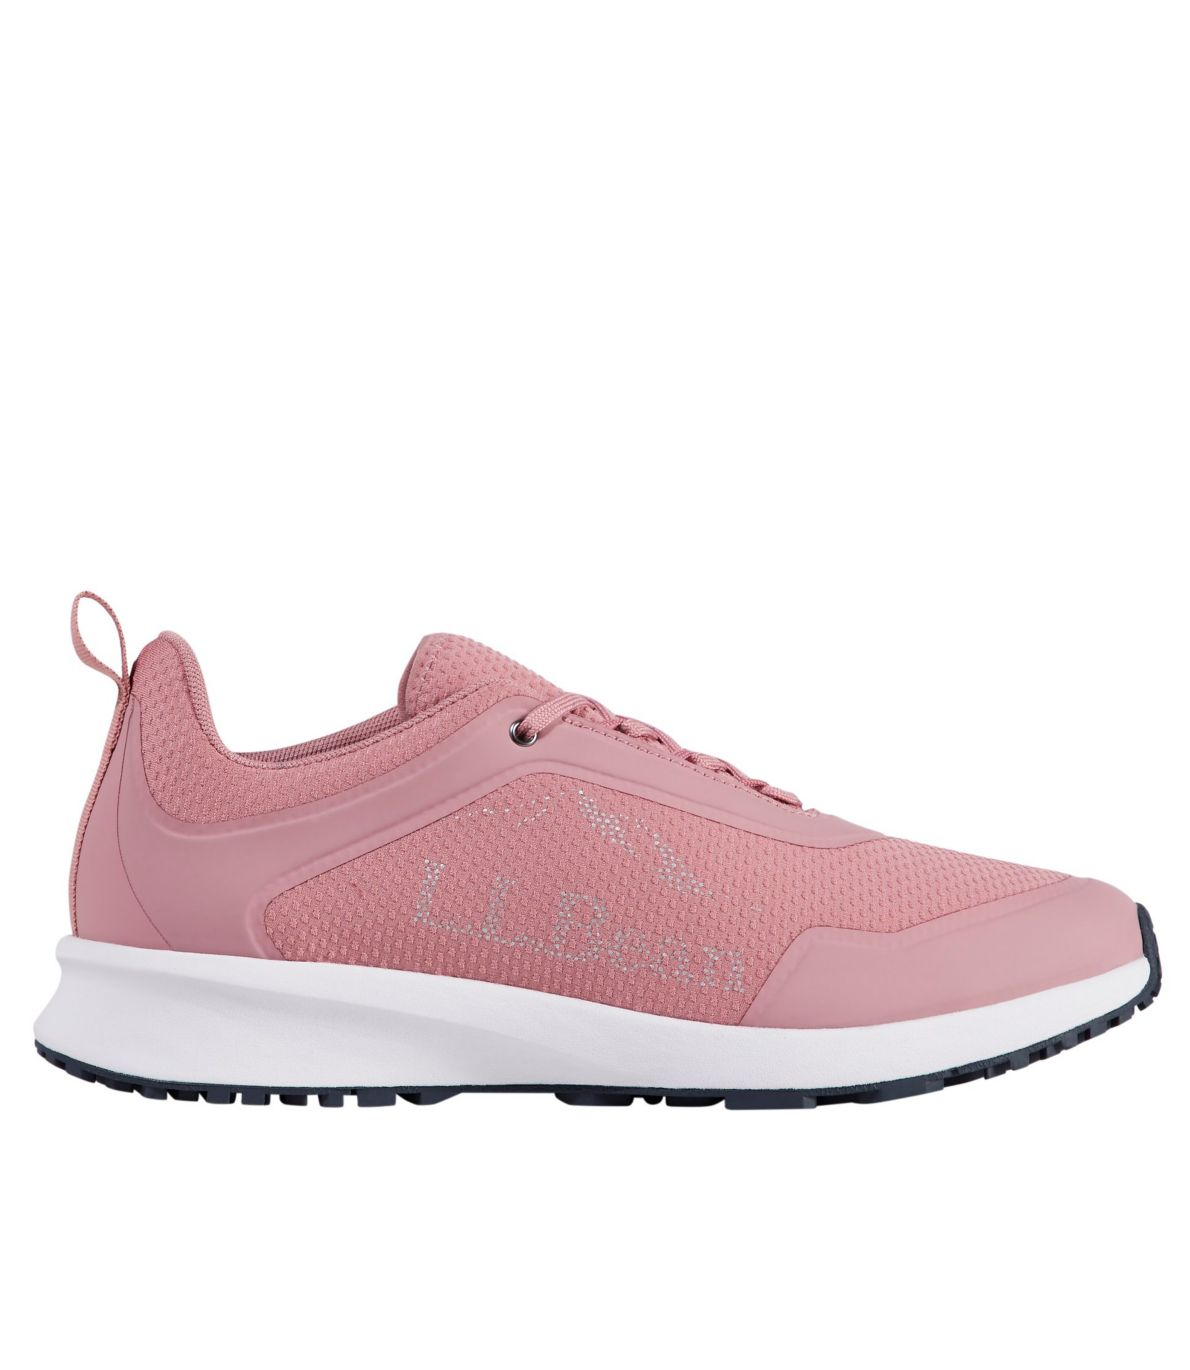 Women's Active Sport Shoes